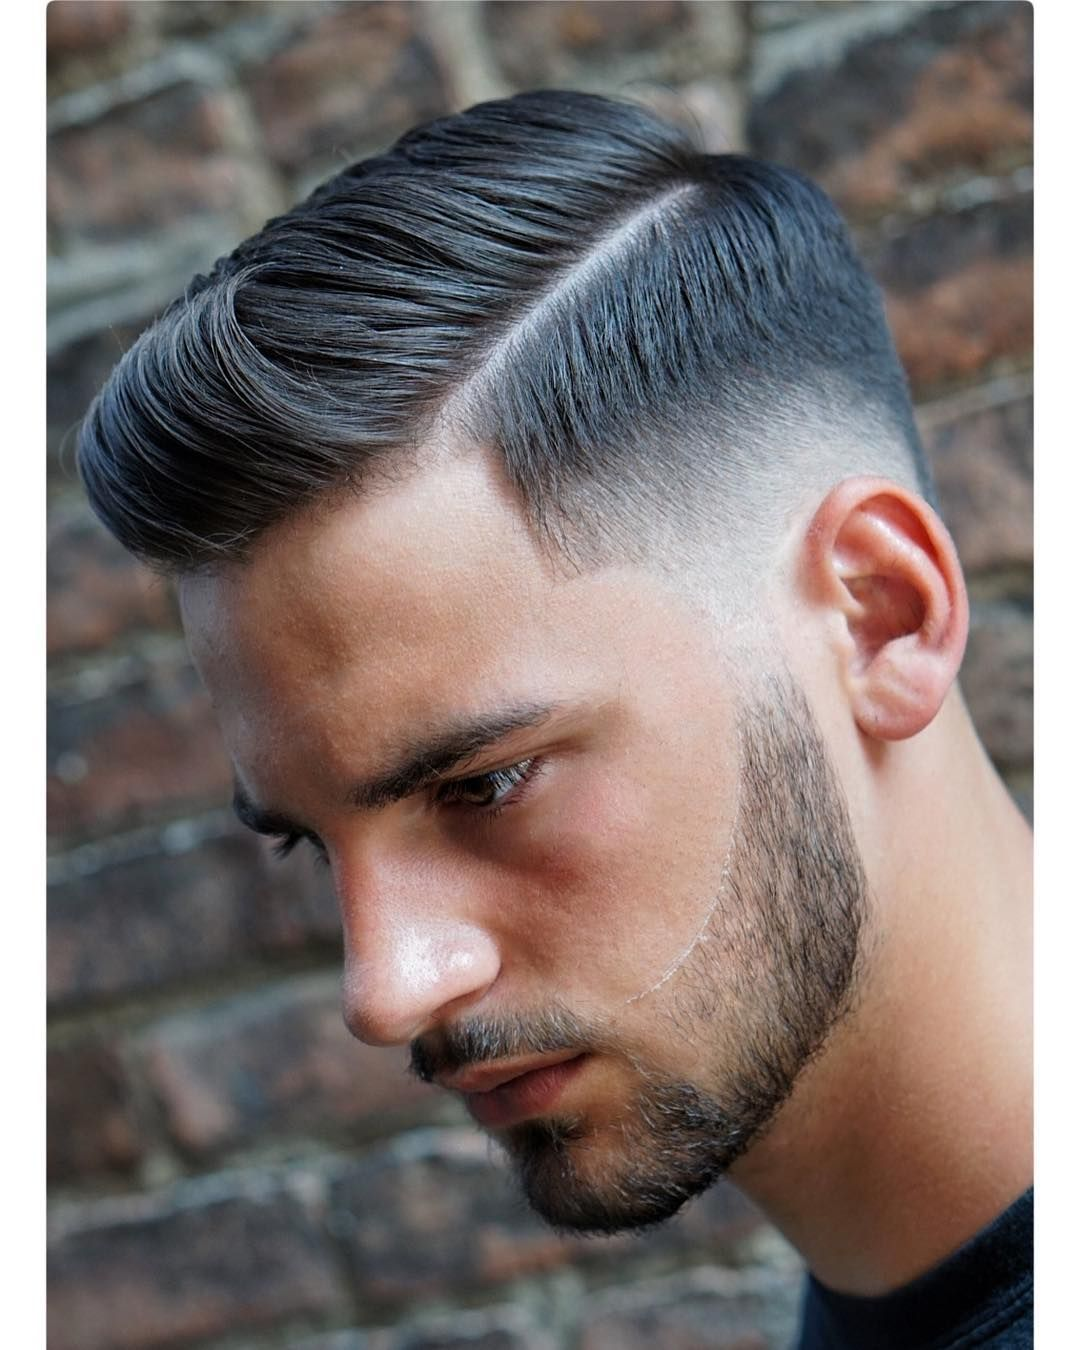 21 Side Part Haircuts For Men To Wear In 2020 Men Haircut Styles Side Part Haircut Haircut Names For Men